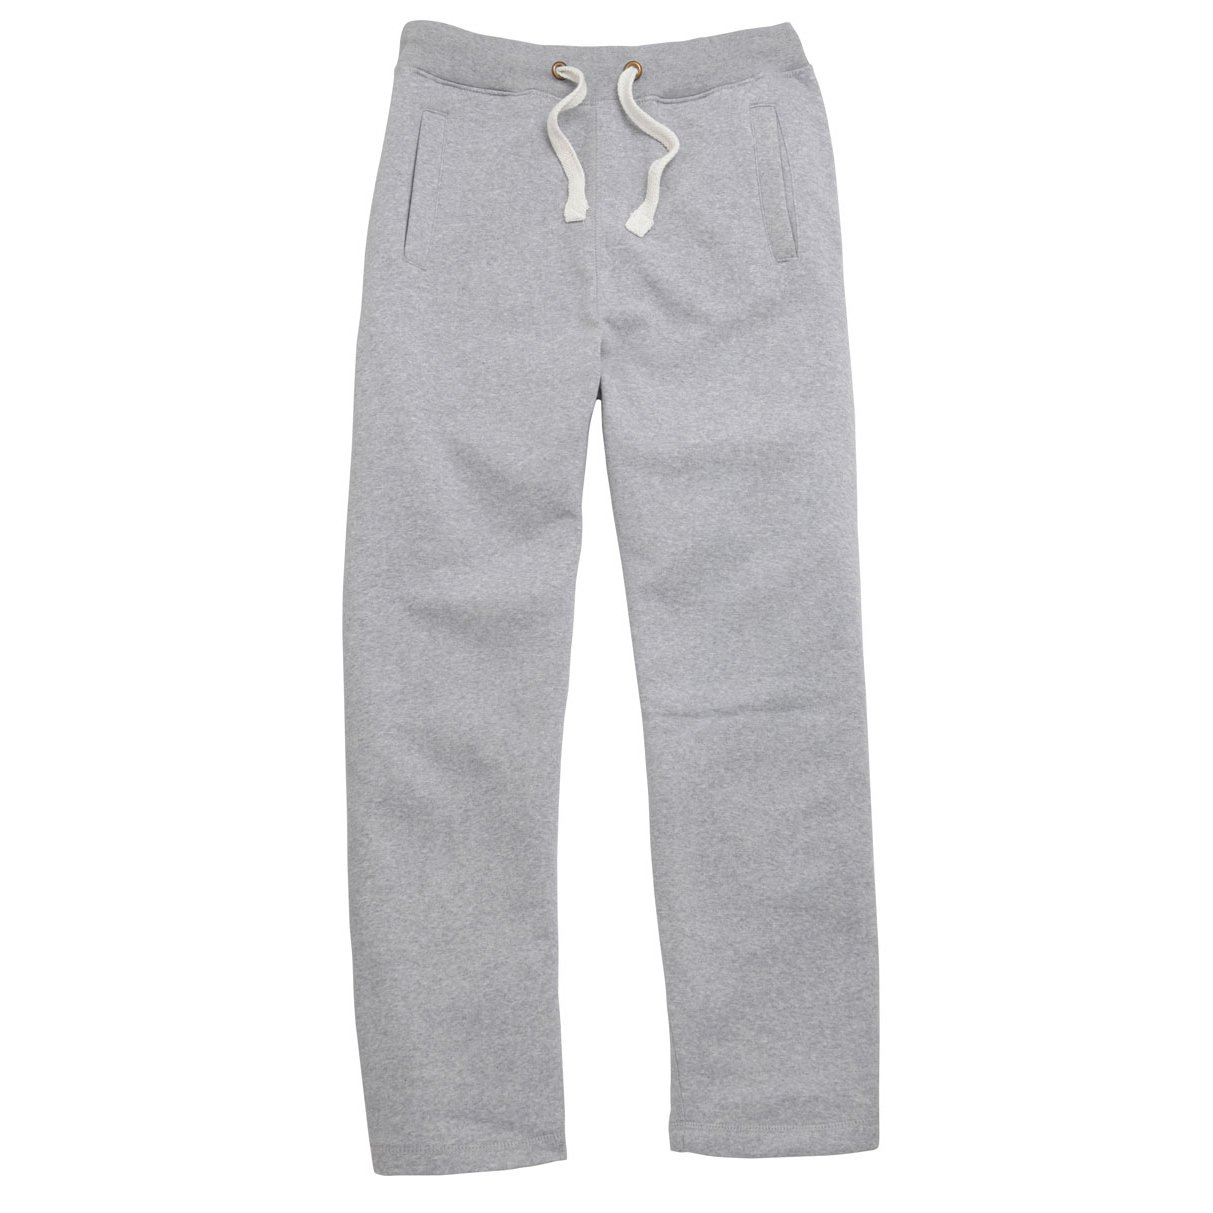 CottonRidge Cotton Ridge Quality Kids Childrens Boys Girls Joggers Jogging Lounge School Pants Grey With Cord